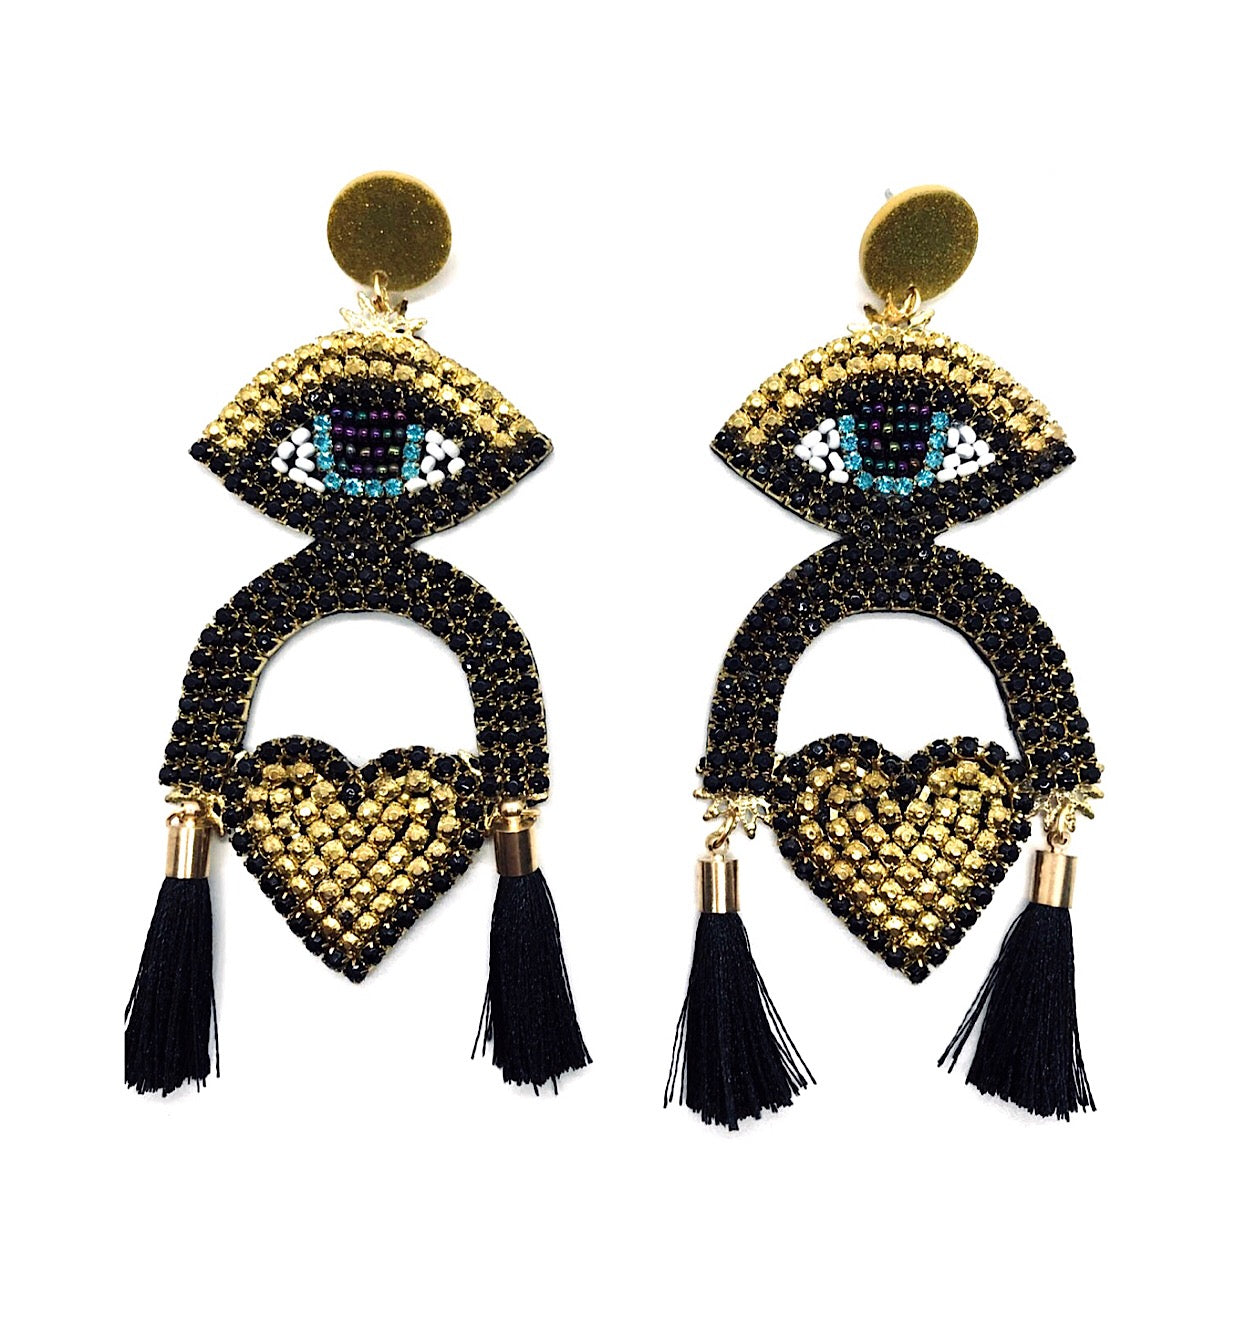 Big Earrings Eye Heart Handmade ( Black)